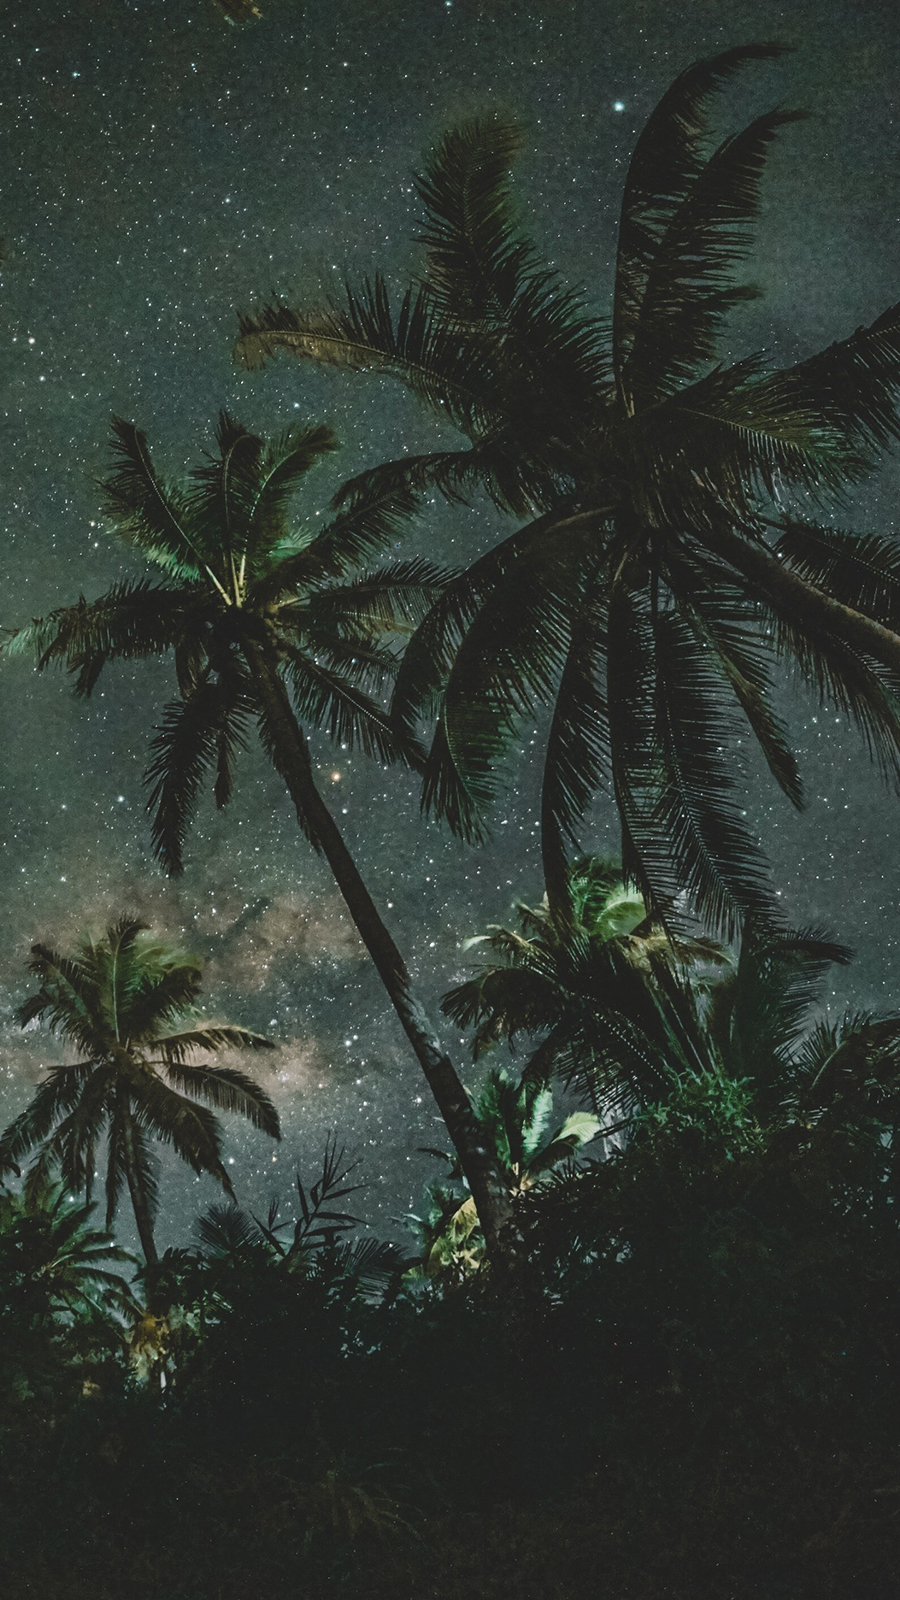 Palms, Trees, Starry, Sky Wallpapers Download